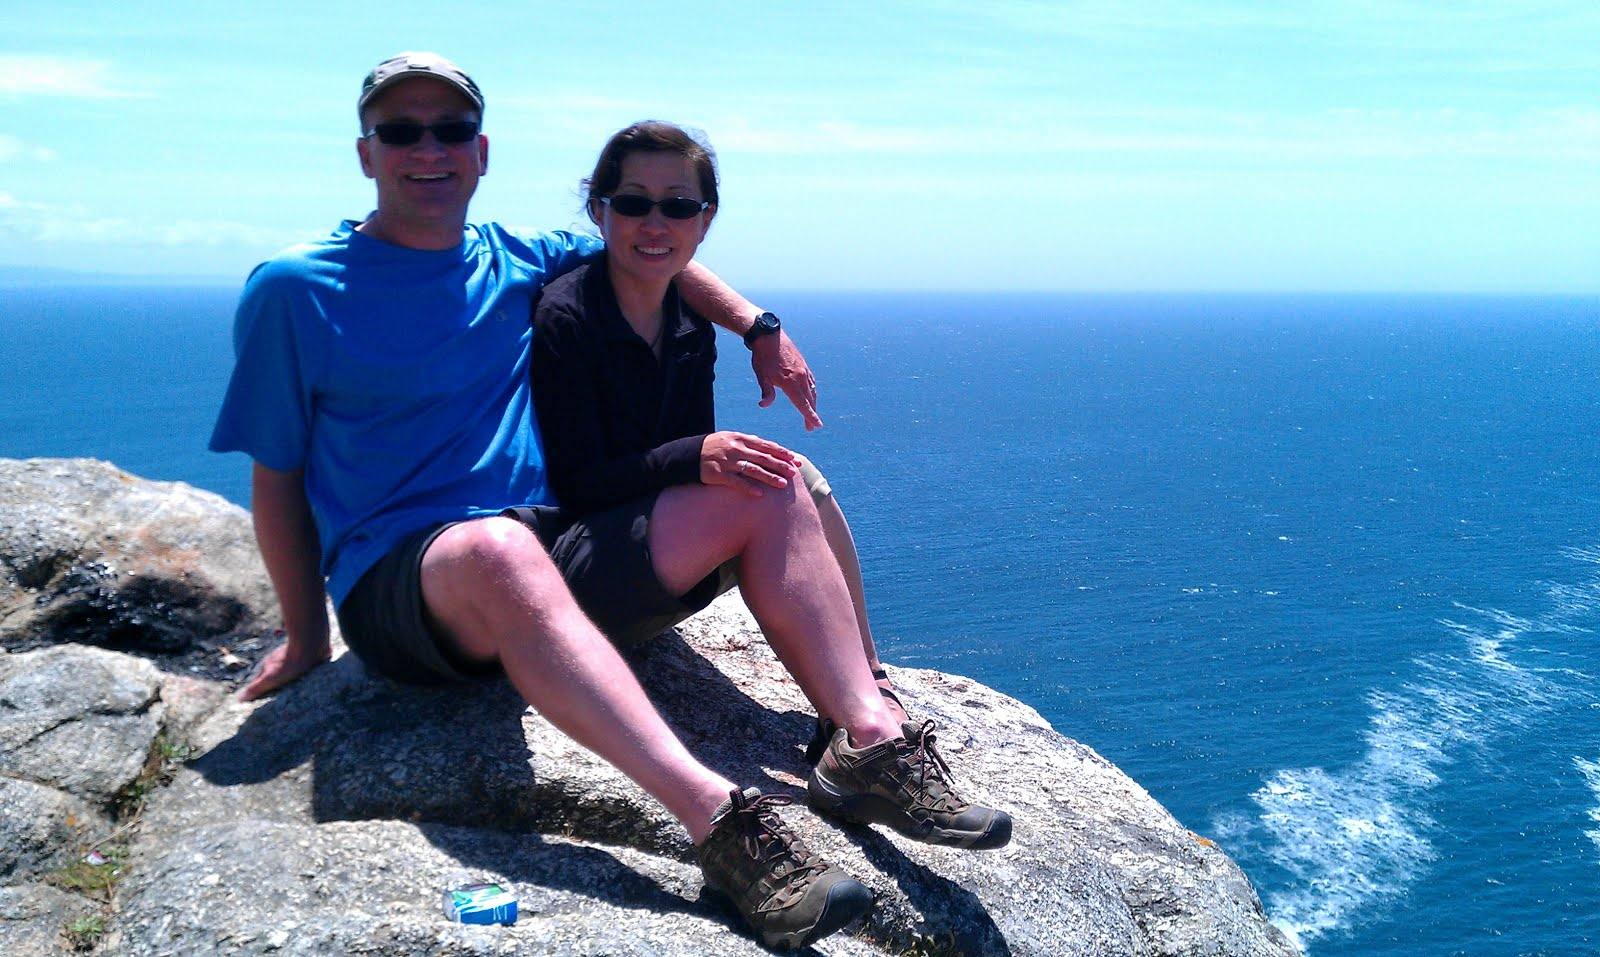 Will and Julie at Finisterre, Spain